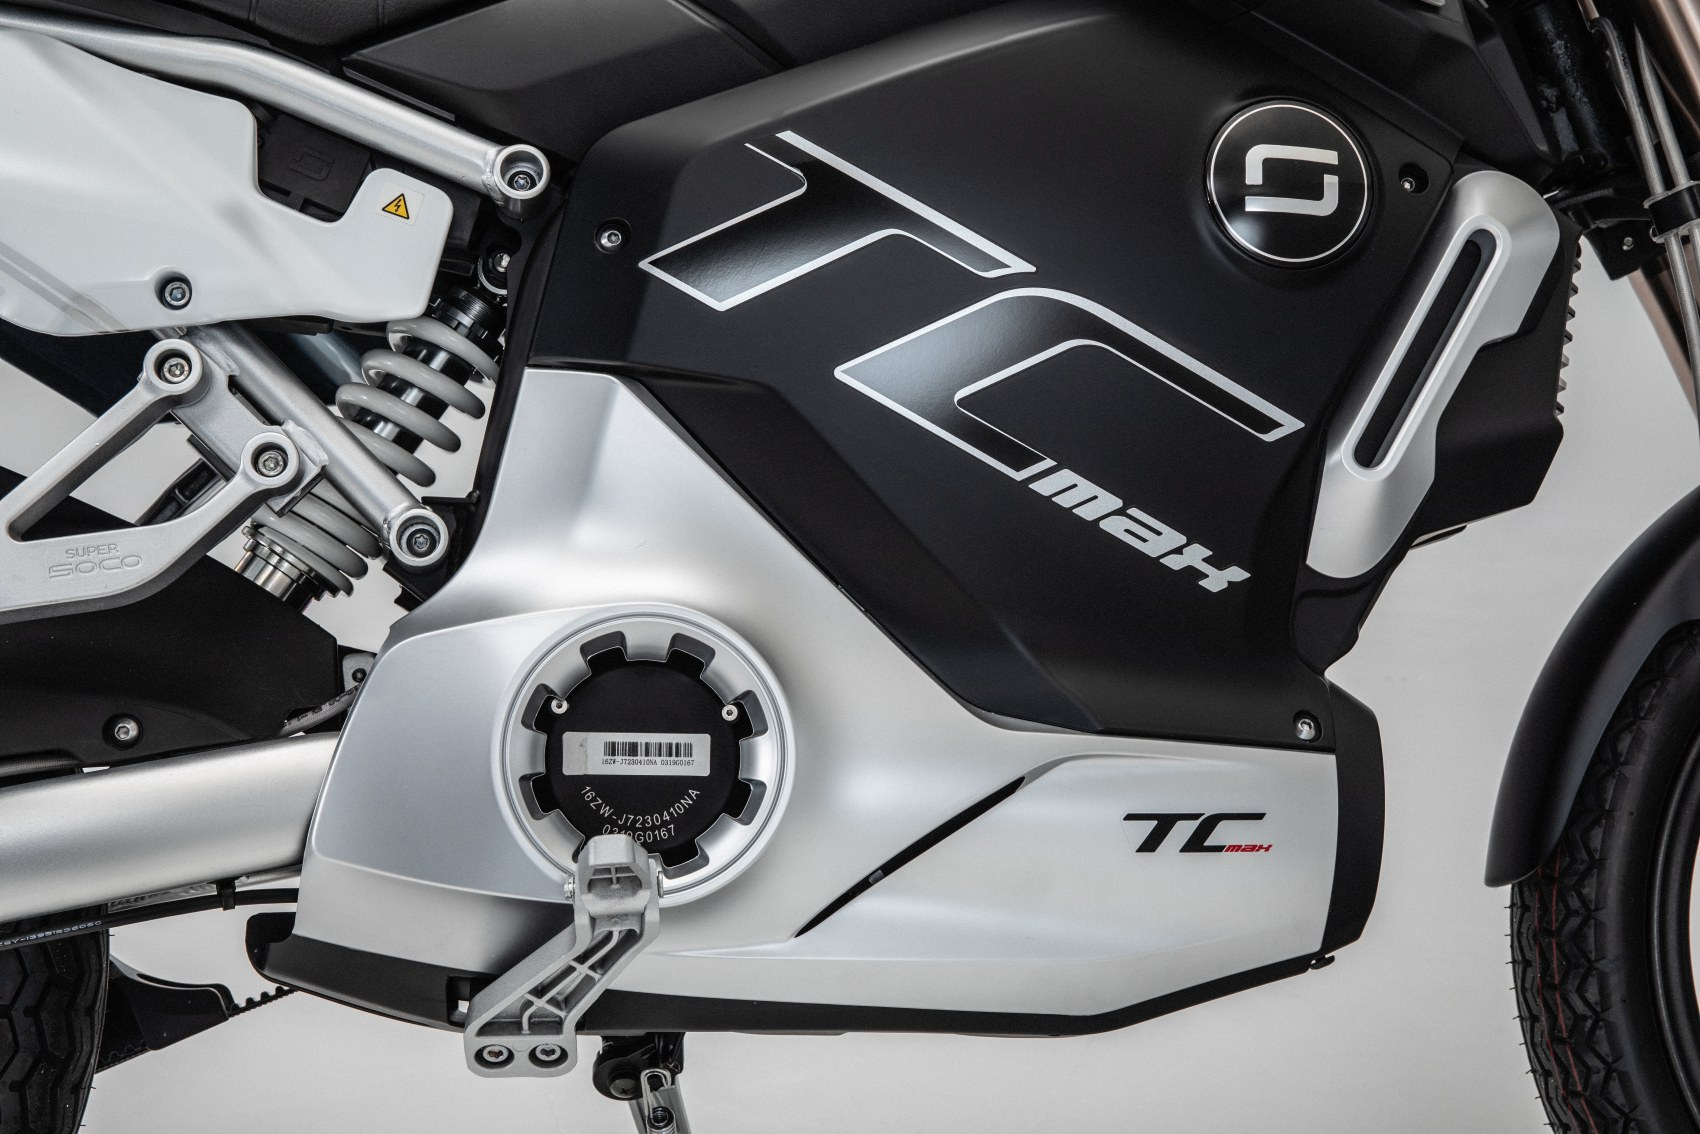 Super Soco TC Max electric motorcycle side panel